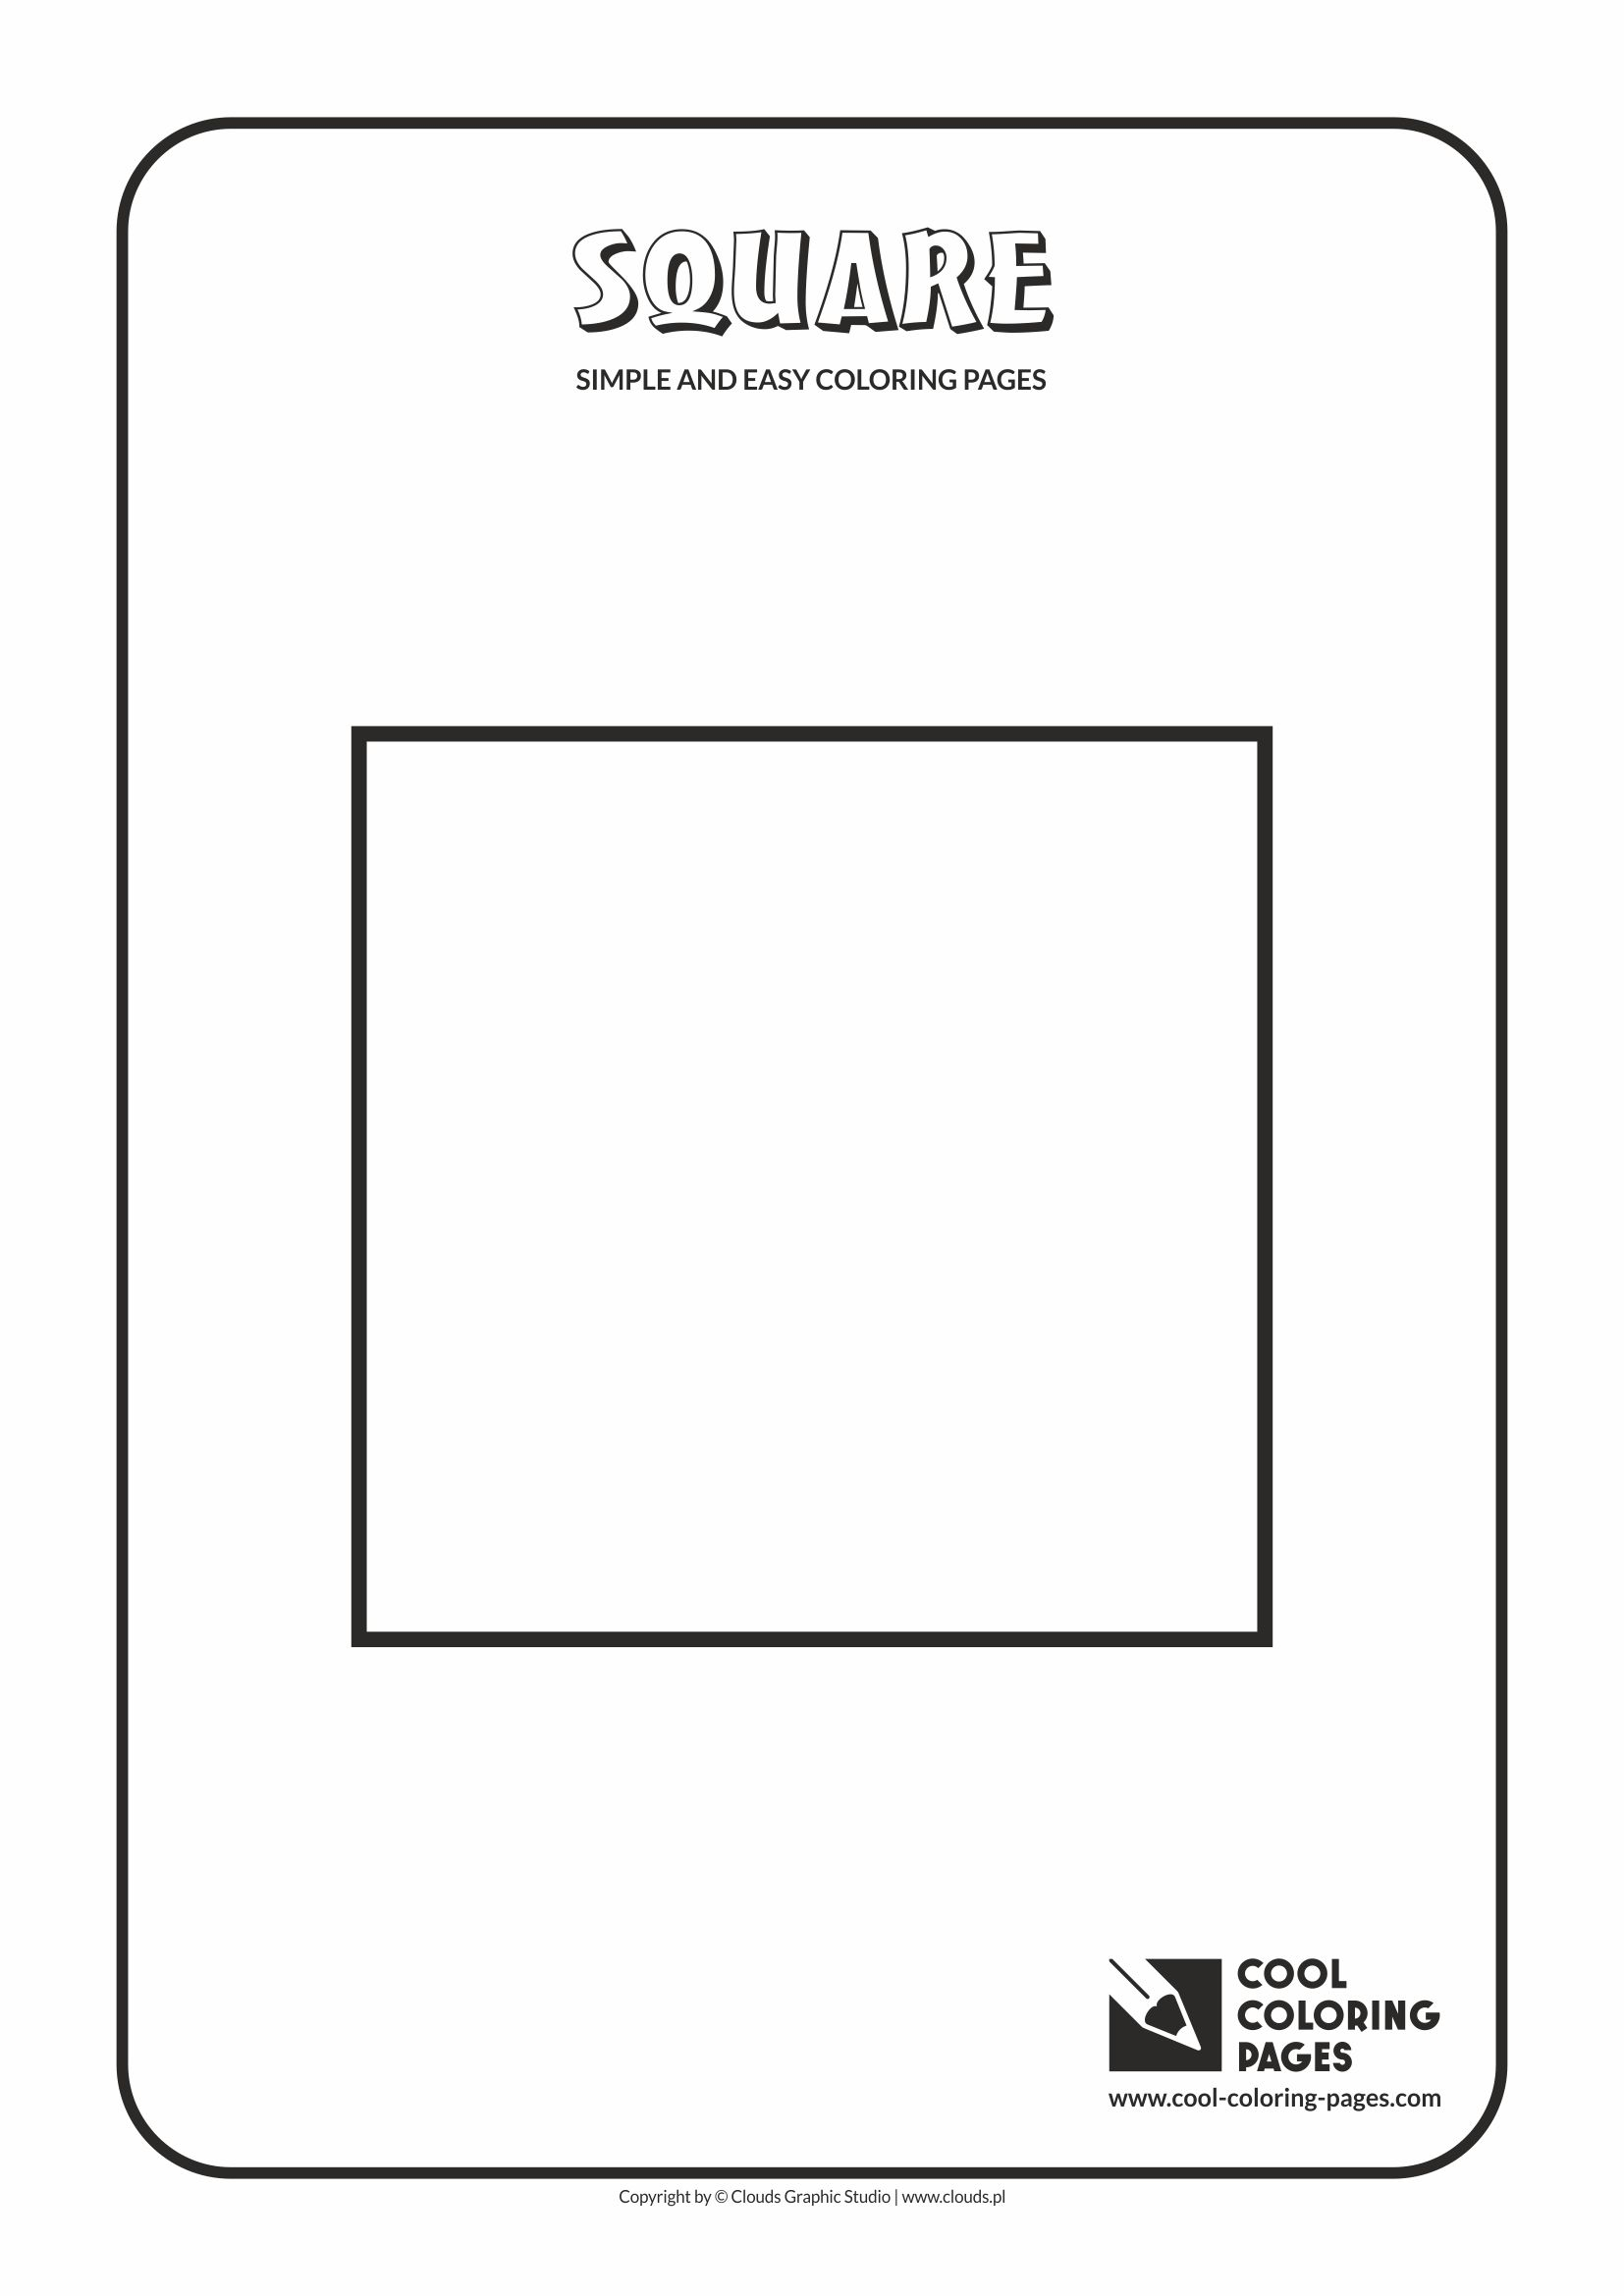 Simple and easy coloring pages for toddlers - Square